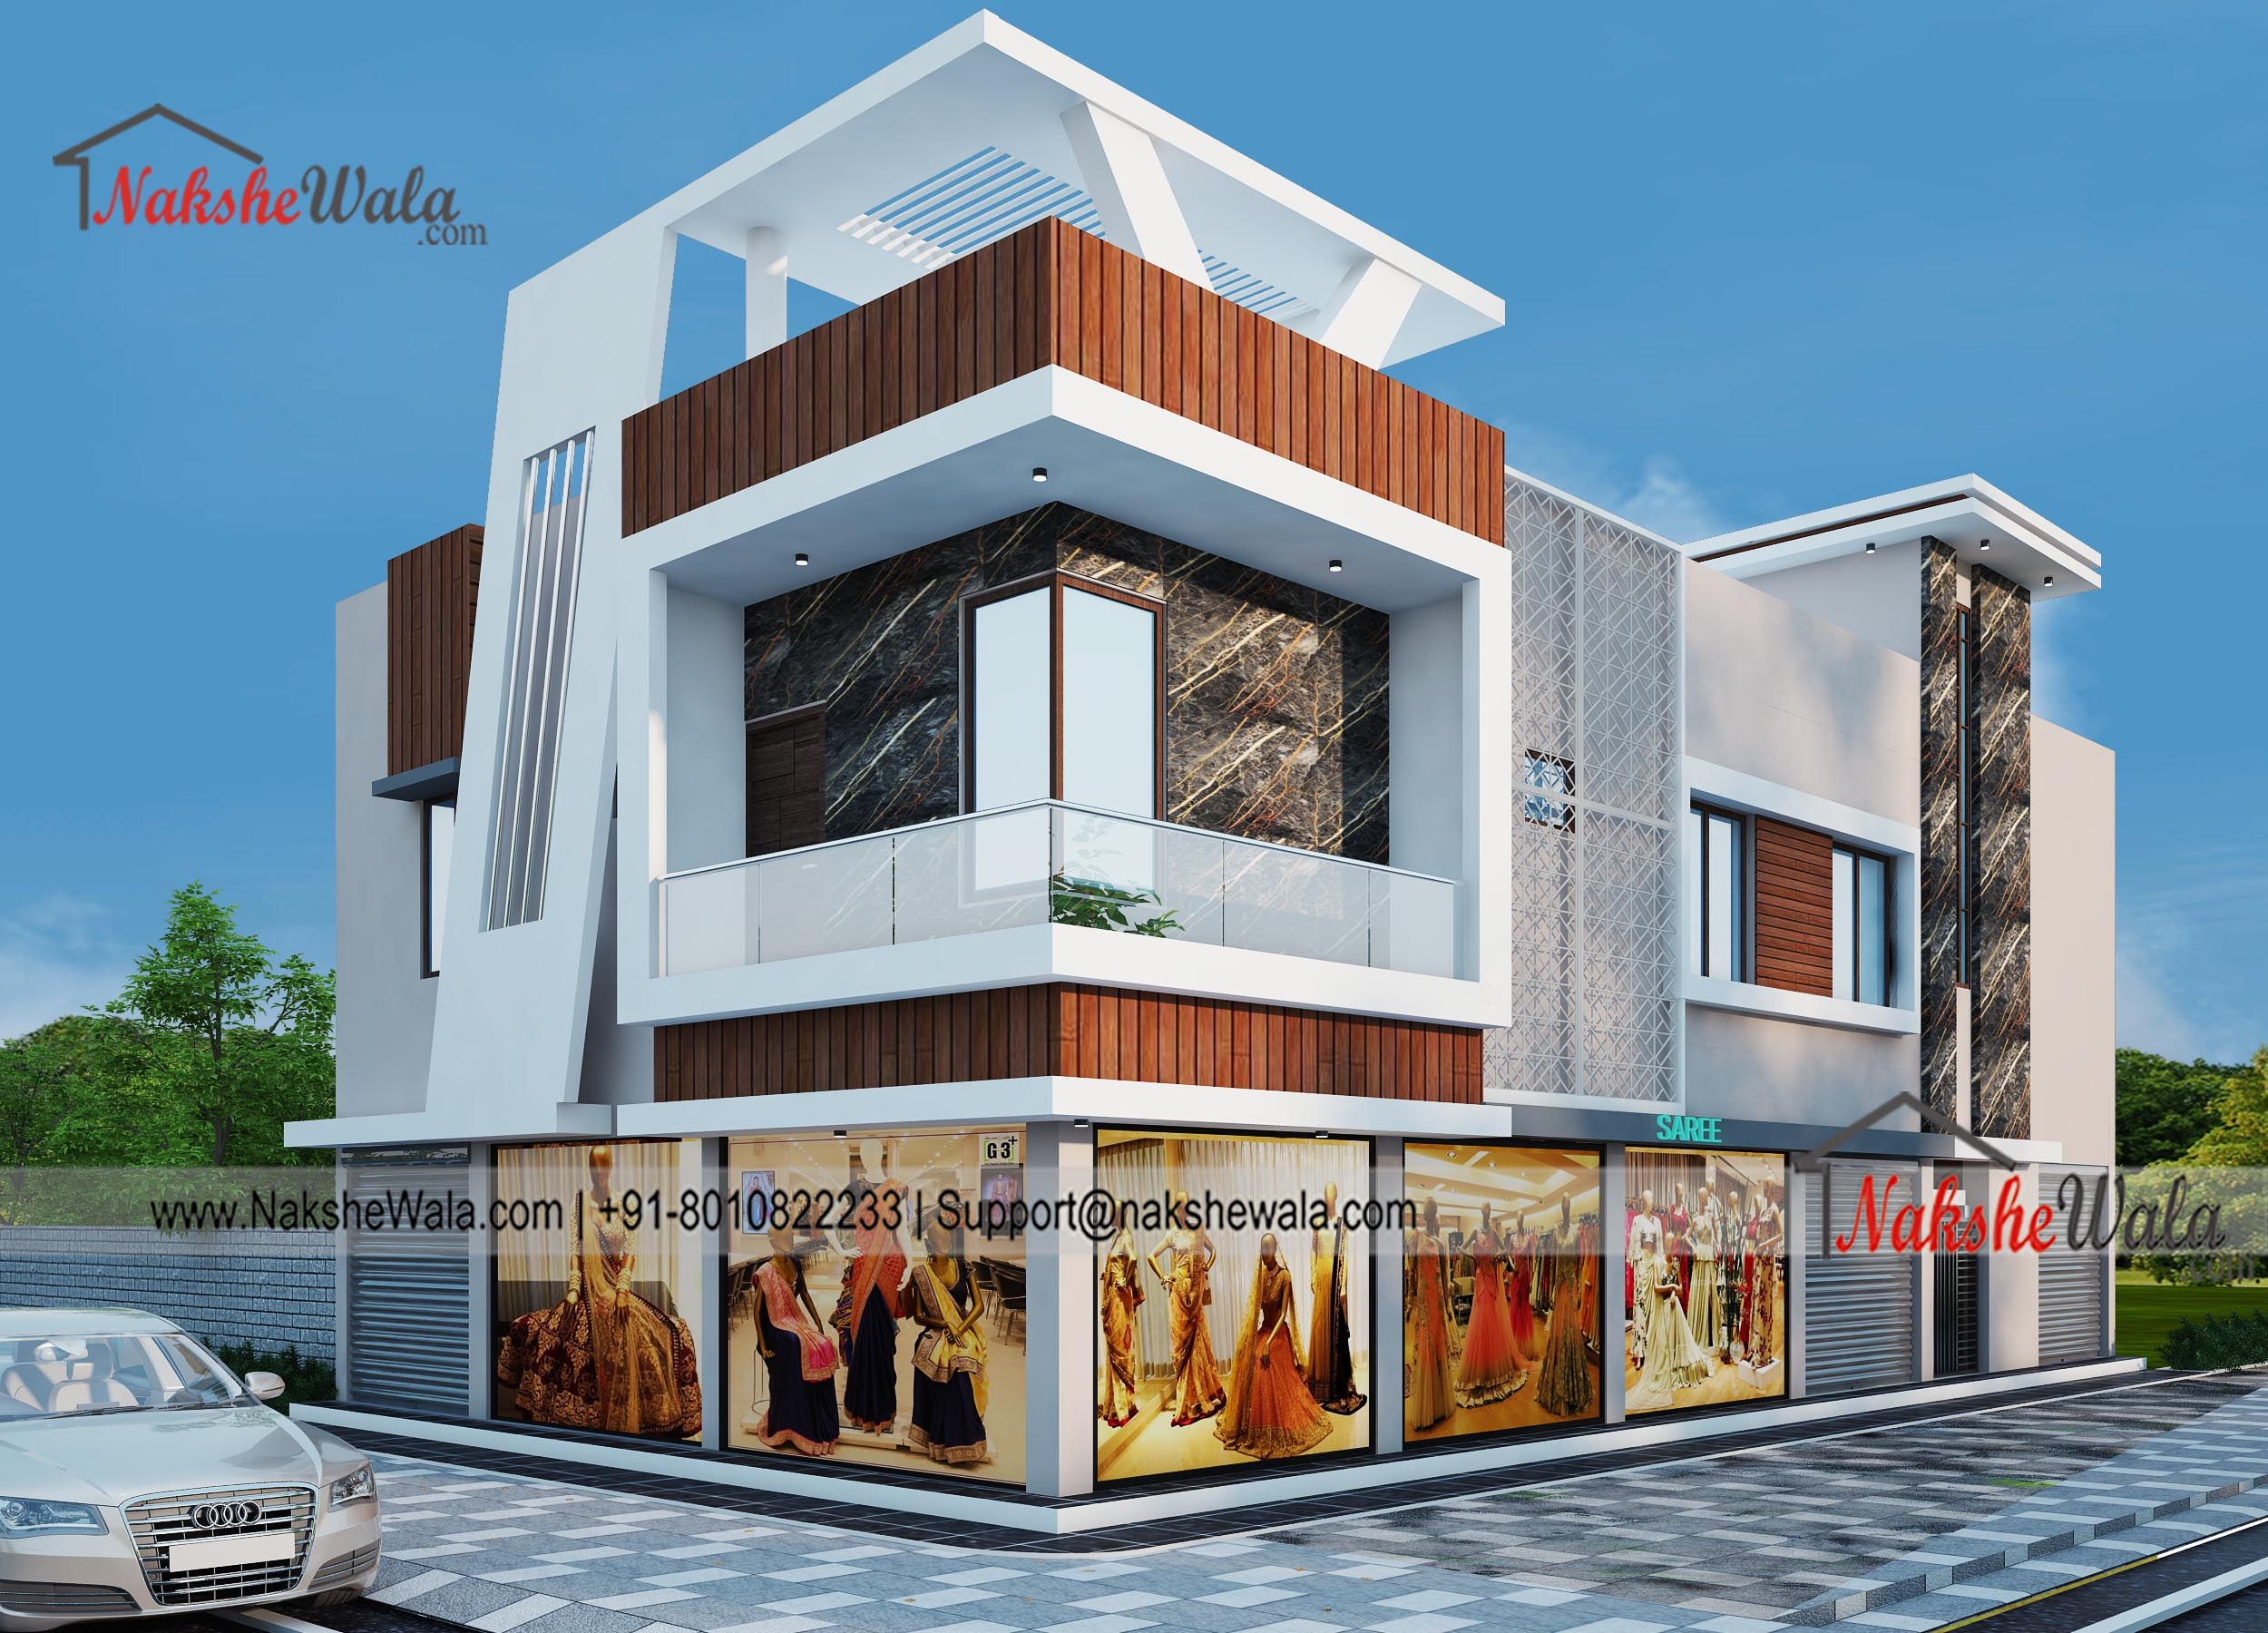 gallrey5e0b25c3b500430X60_Commercial_cum_residential_building_elevvation_by_nakshewala.com_S.jpg